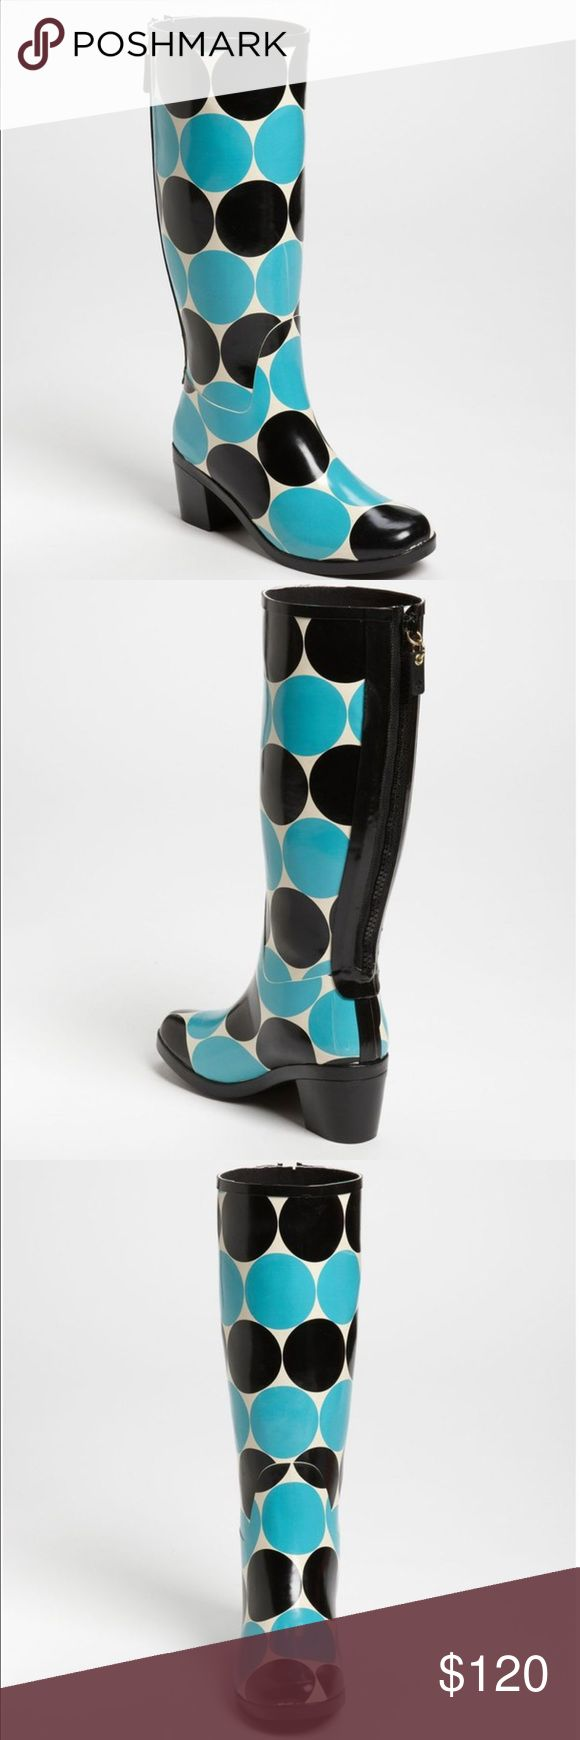 """NEW KATE SPADE NEW YORK DESIGNER RAIN BOOTS 9 BRAND NEW!!! KATE SPADE RARE POLKA DOT RAIN BOOTS Description: Mid heel boot  Rubber upper with zip gusset at back Pull on style Fabric lining and rubber sole Measurements: Heel height 2½"""", shaft height 13½"""", calf   Material: Rubber  Brand: kate spade new york shoes  Origin: Imported kate spade Shoes Winter & Rain Boots"""